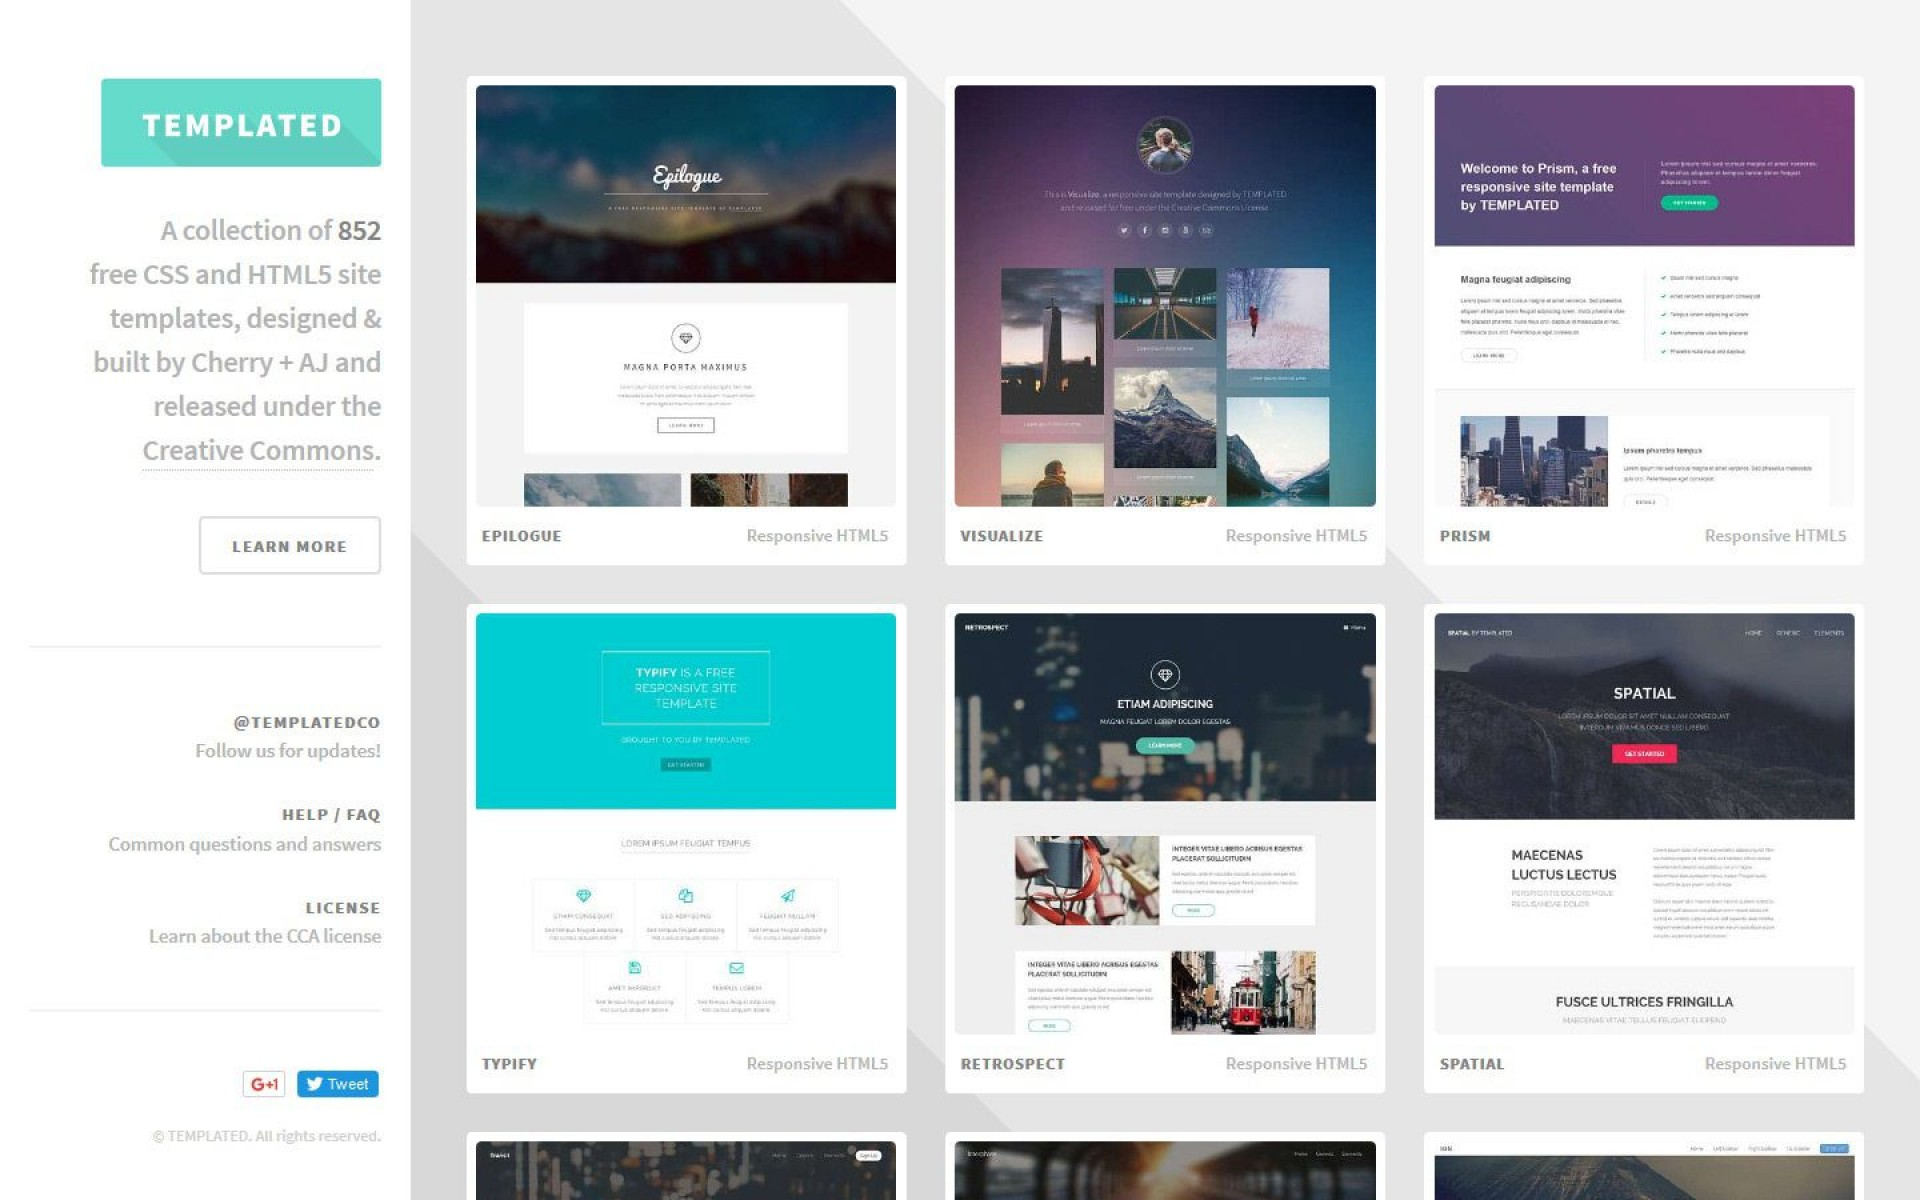 006 Rare Free Responsive Html5 Template High Resolution  Download For School Bootstrap Website1920